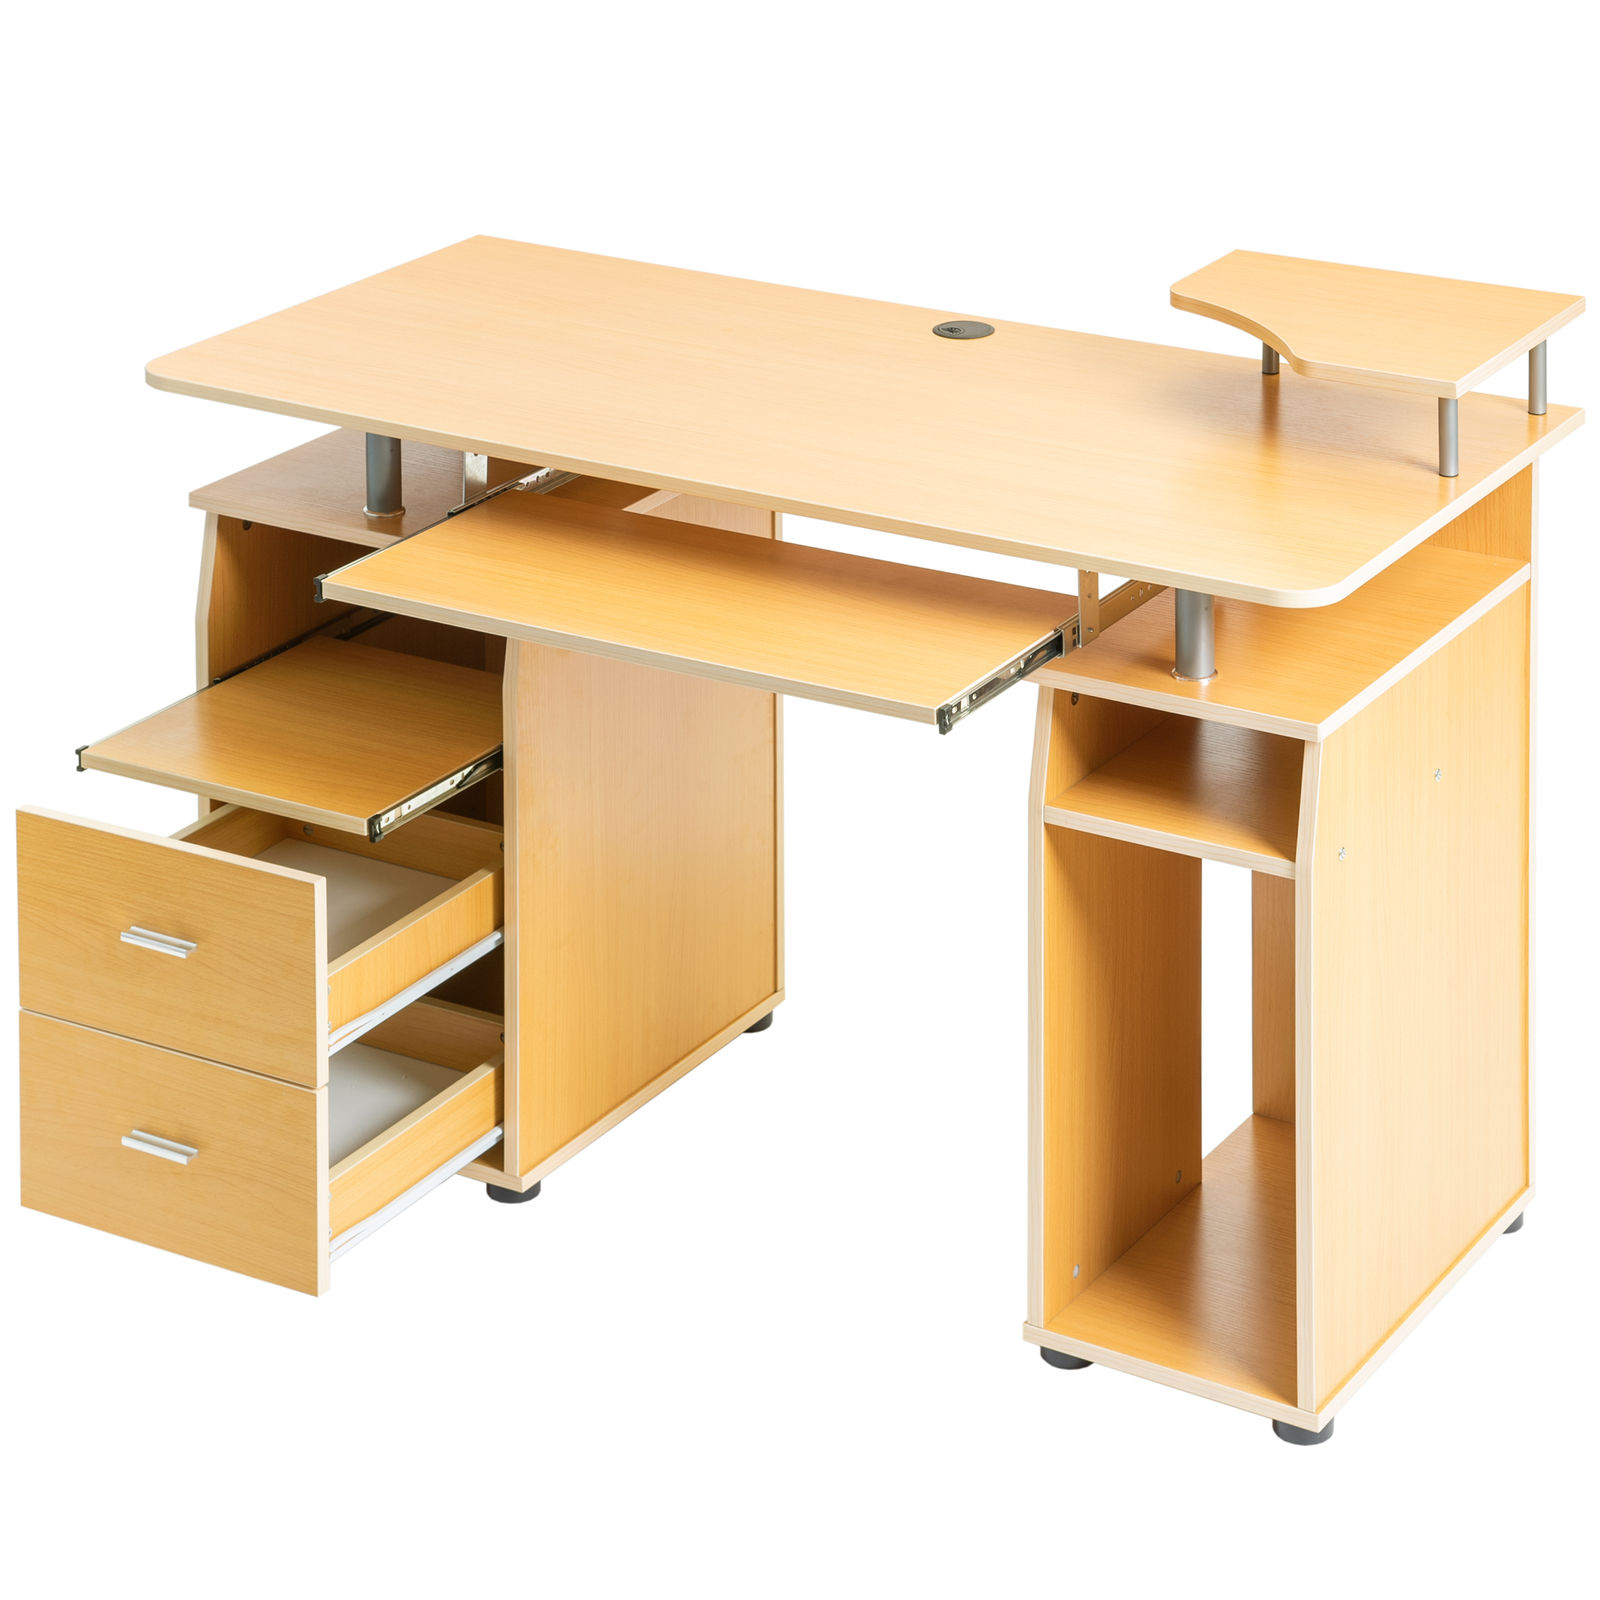 Us 149 99 Computer Desk With Pull Out Keyboard Tray And Drawers Storage Bookcase Pc Laptop Workstation Study Table For Home Office In Desks